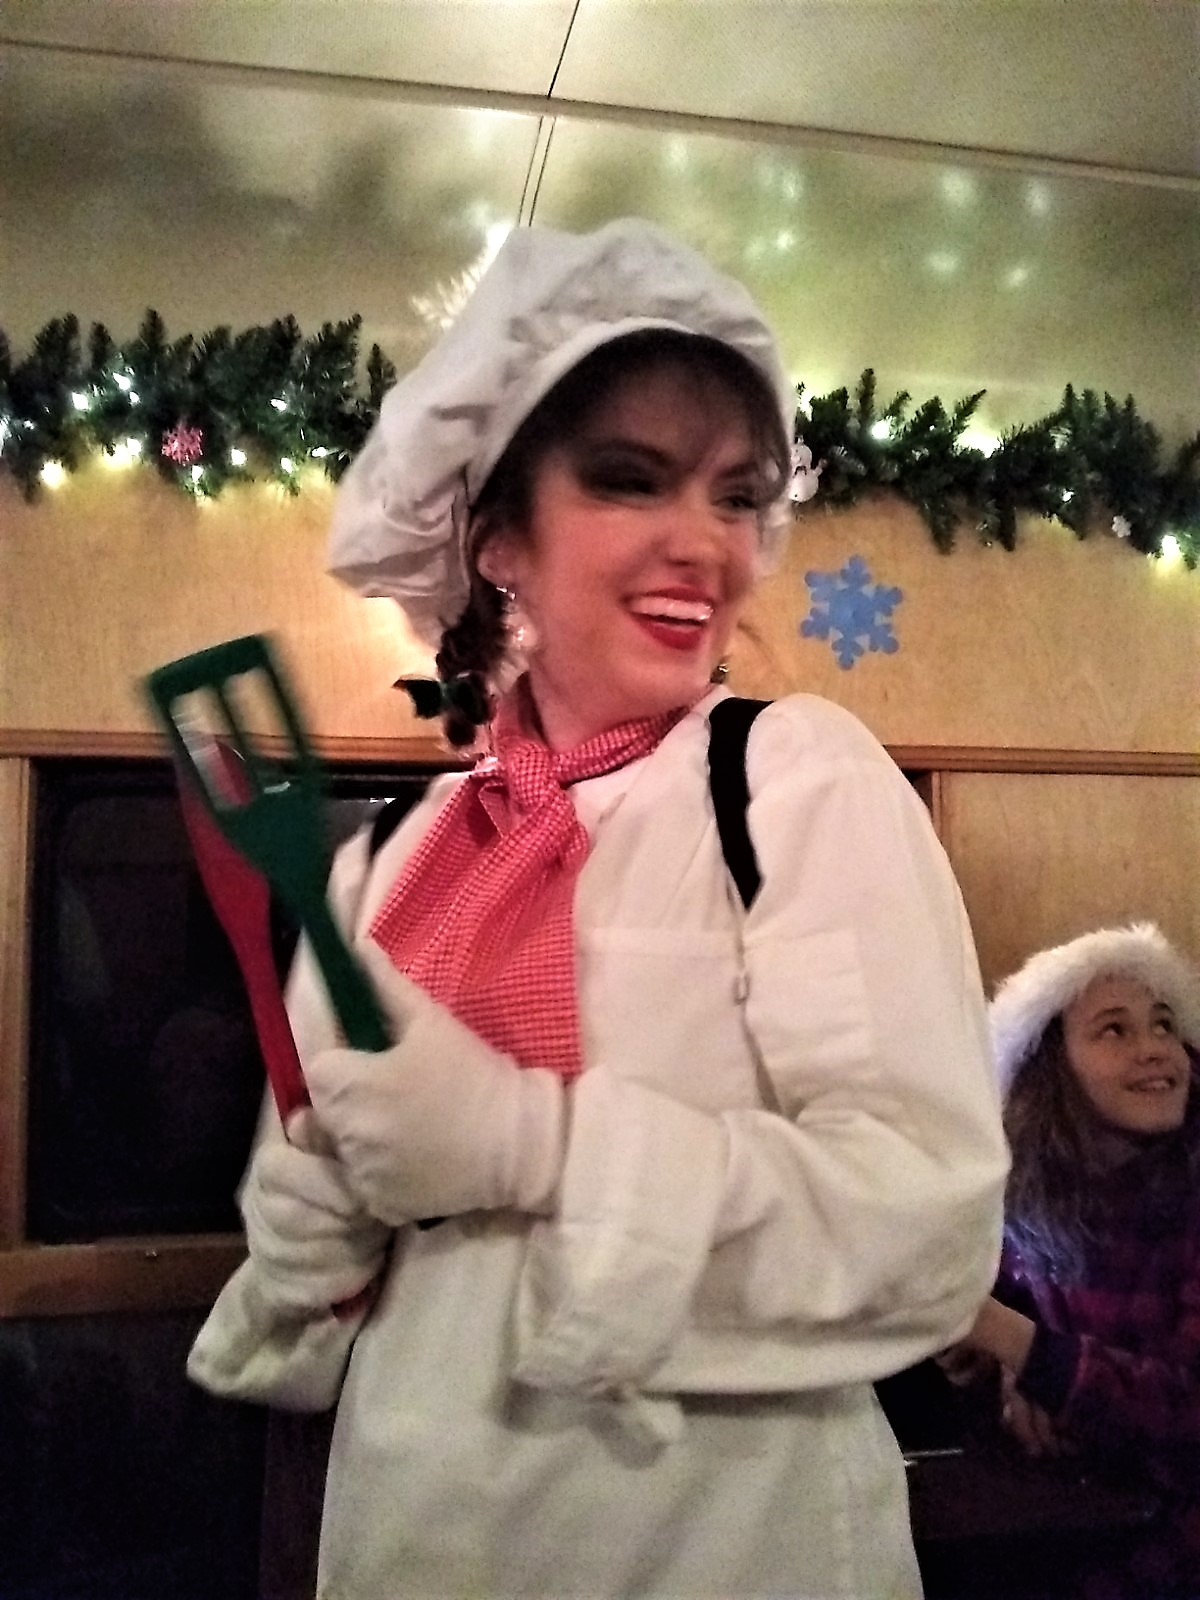 Dancing Chef on Polar Express